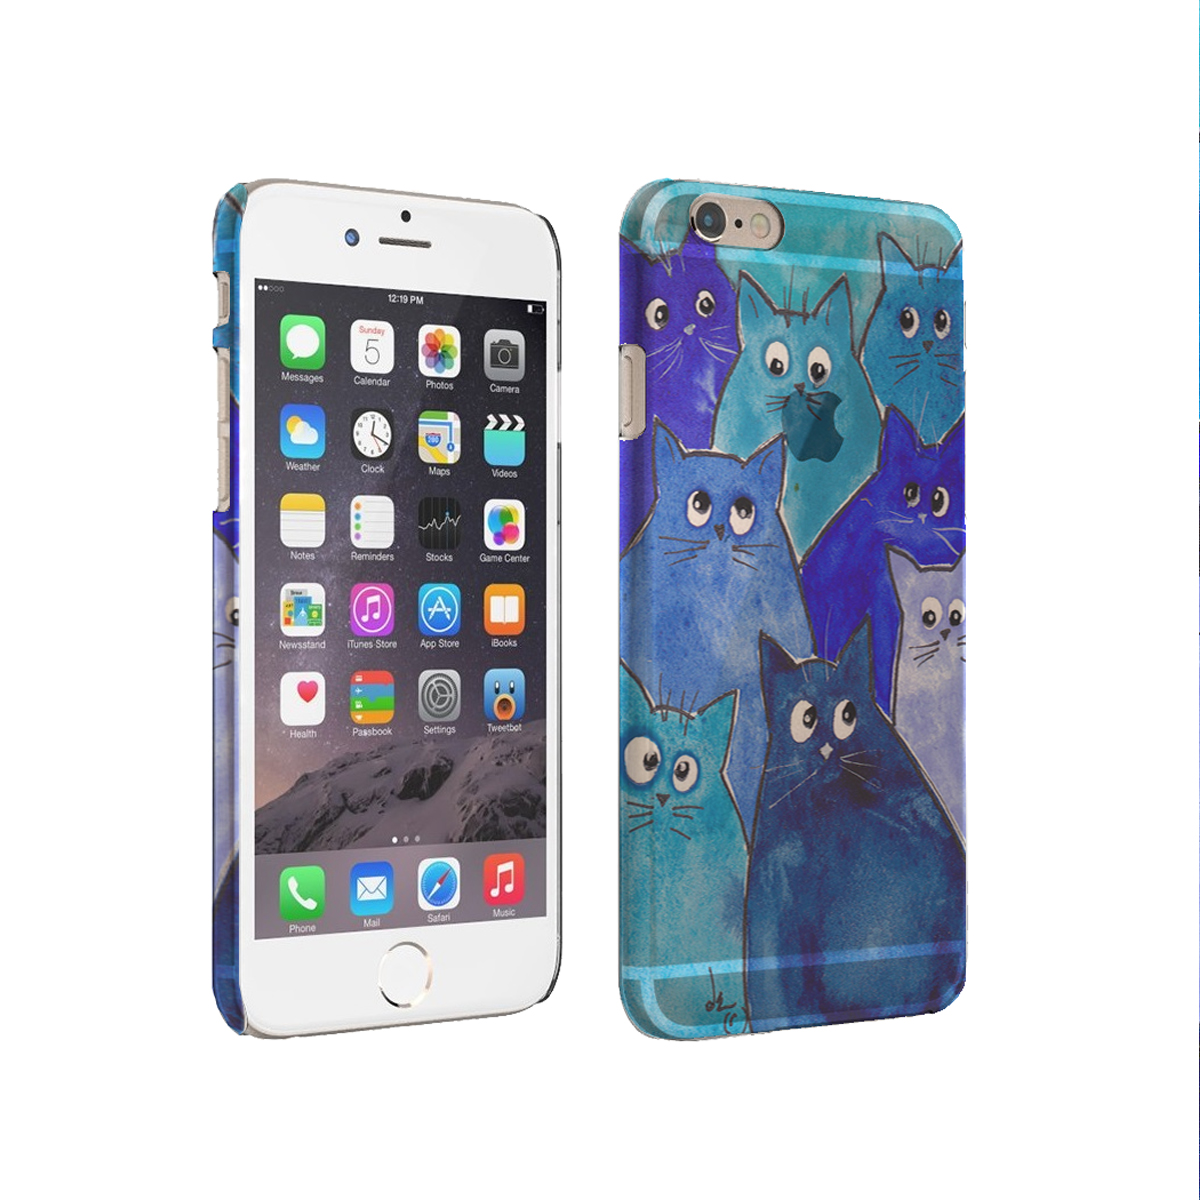 KuzmarK iPhone 6 Rubber TPU Gel Cover Case - Whacky Blue Kitties Abstract Cat Art by Denise Every